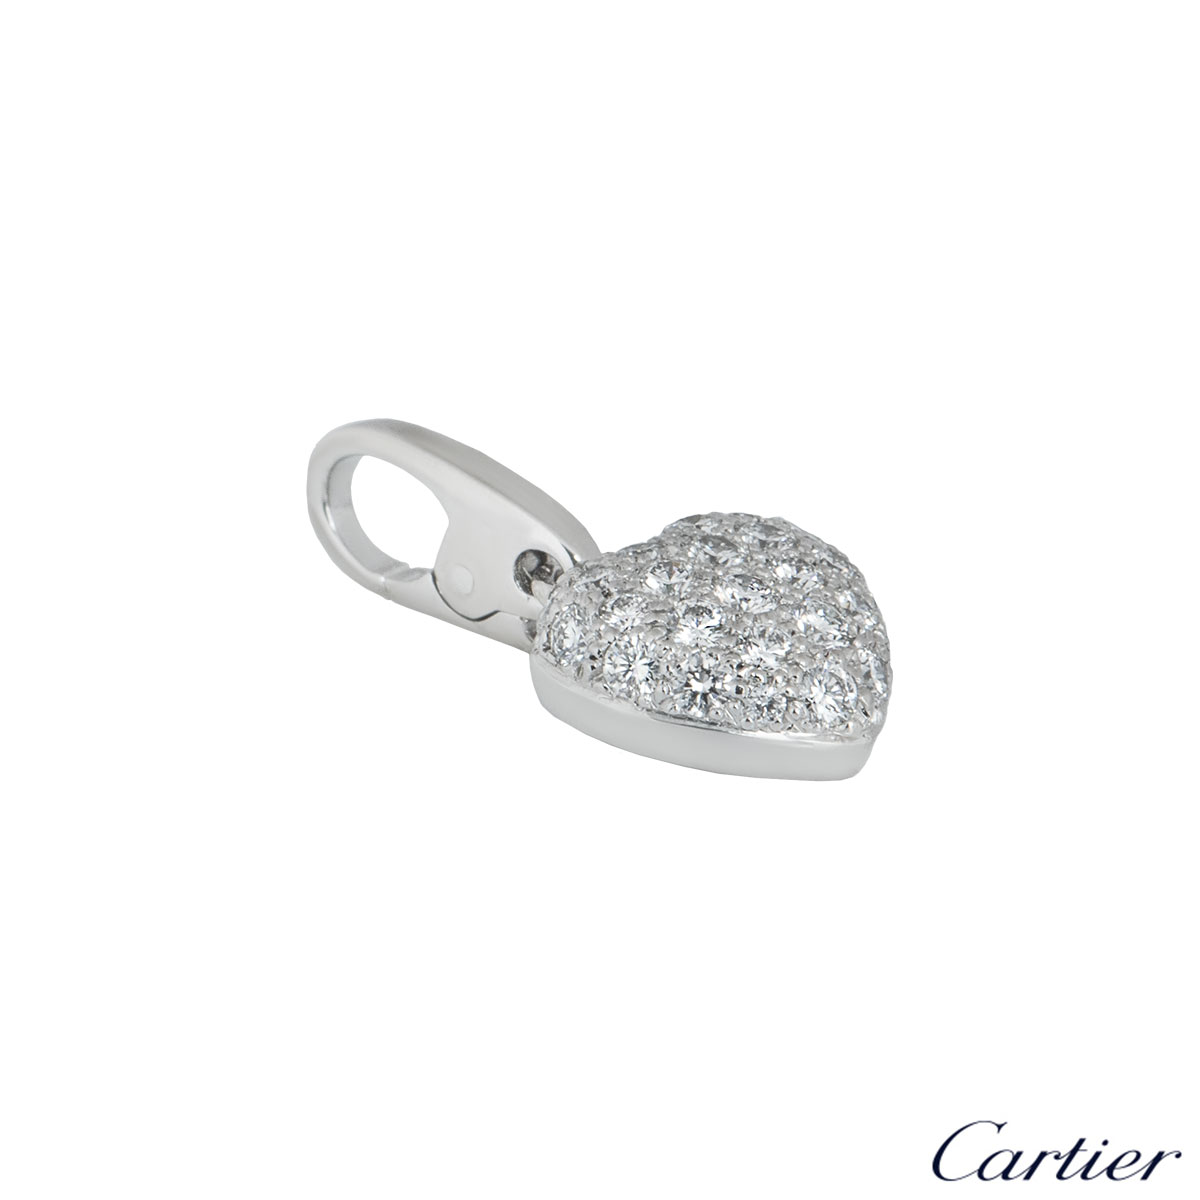 Cartier White Gold Pave Diamond Heart Charm